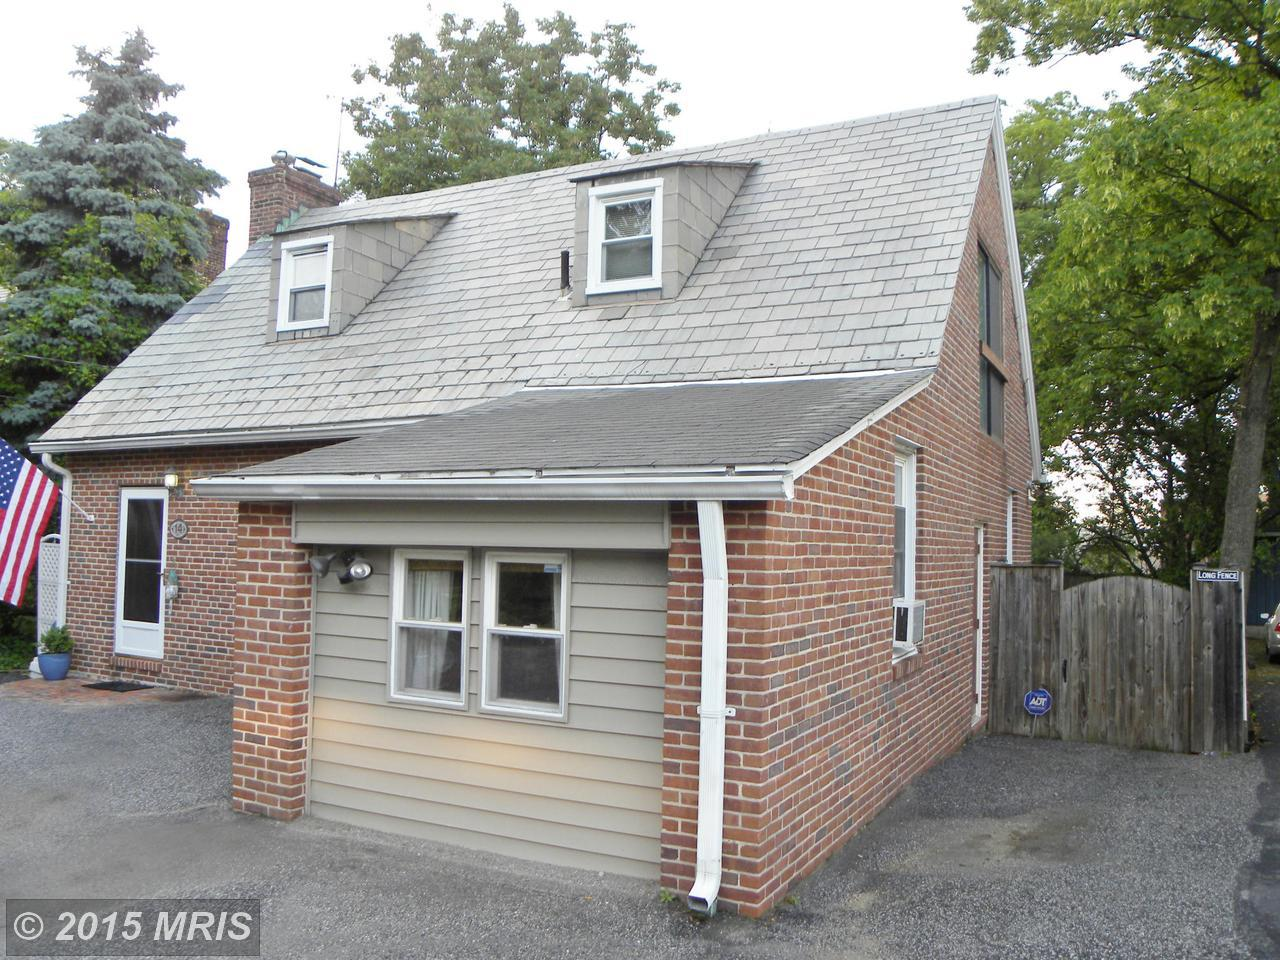 lutherville timonium singles dating site 306 lochview ter, lutherville timonium  listing type single family .